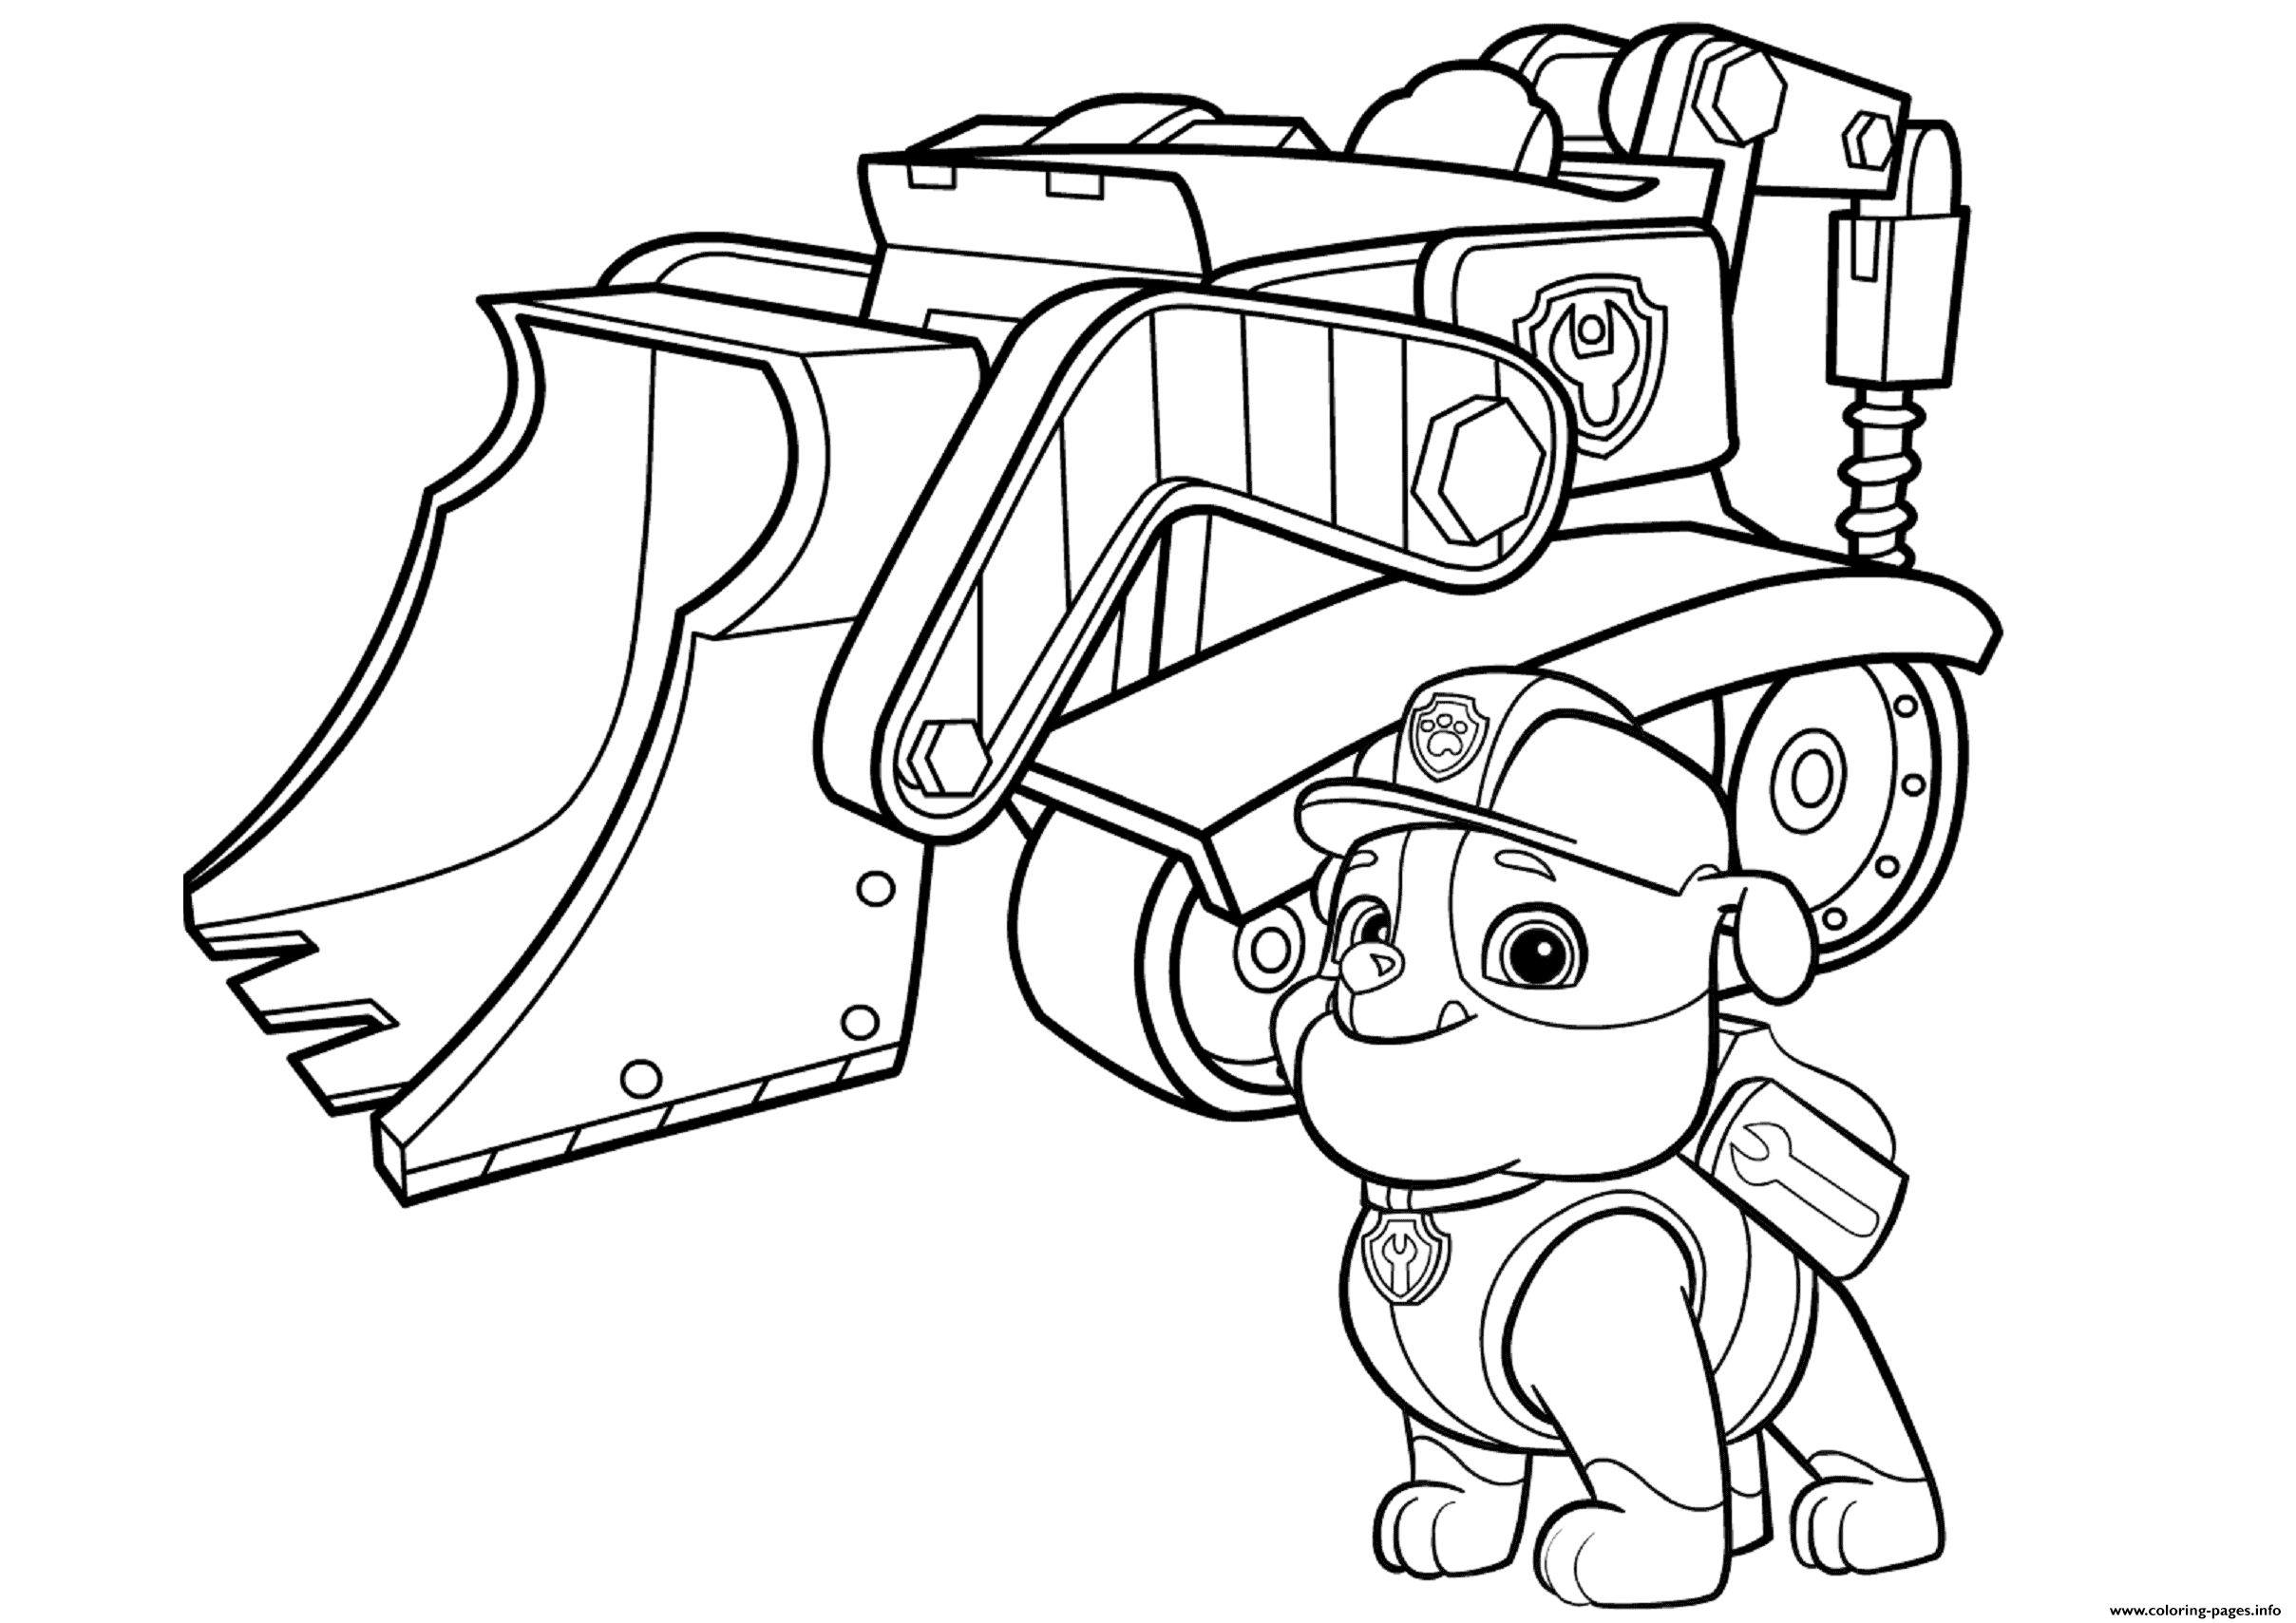 Paw Patrol Coloring Pages Free Paw Patrol Coloring Pages Happiness Is Homemade Albanysinsanity Com Paw Patrol Coloring Pages Paw Patrol Coloring Cartoon Coloring Pages